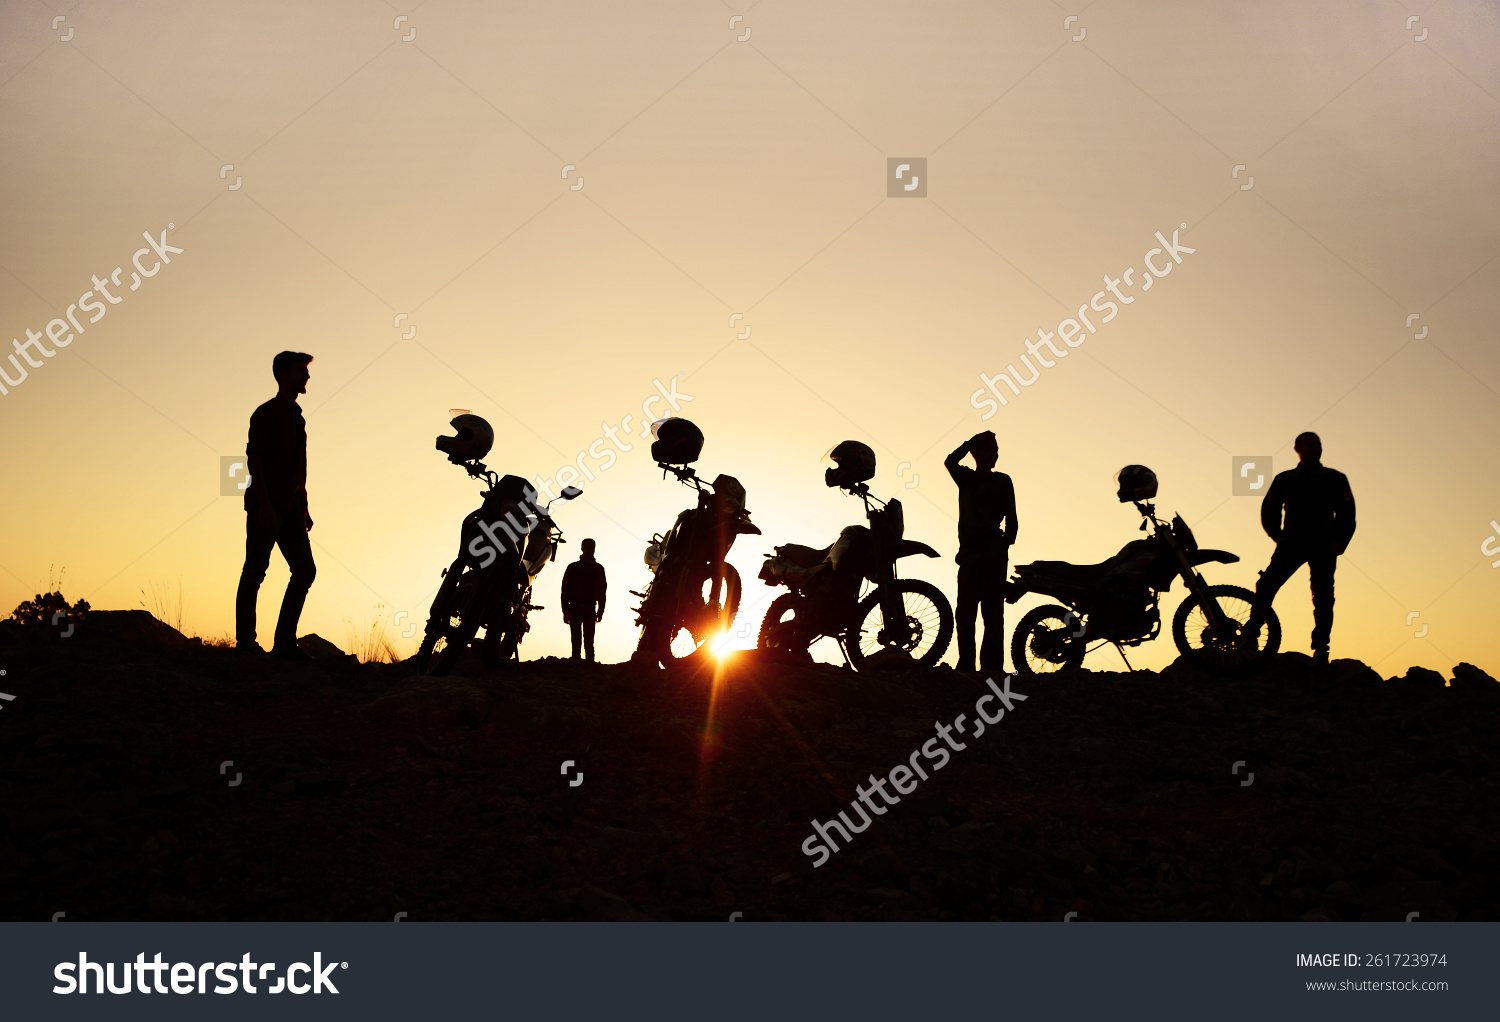 stock-photo-motorcycle-team-silhouette-261723974